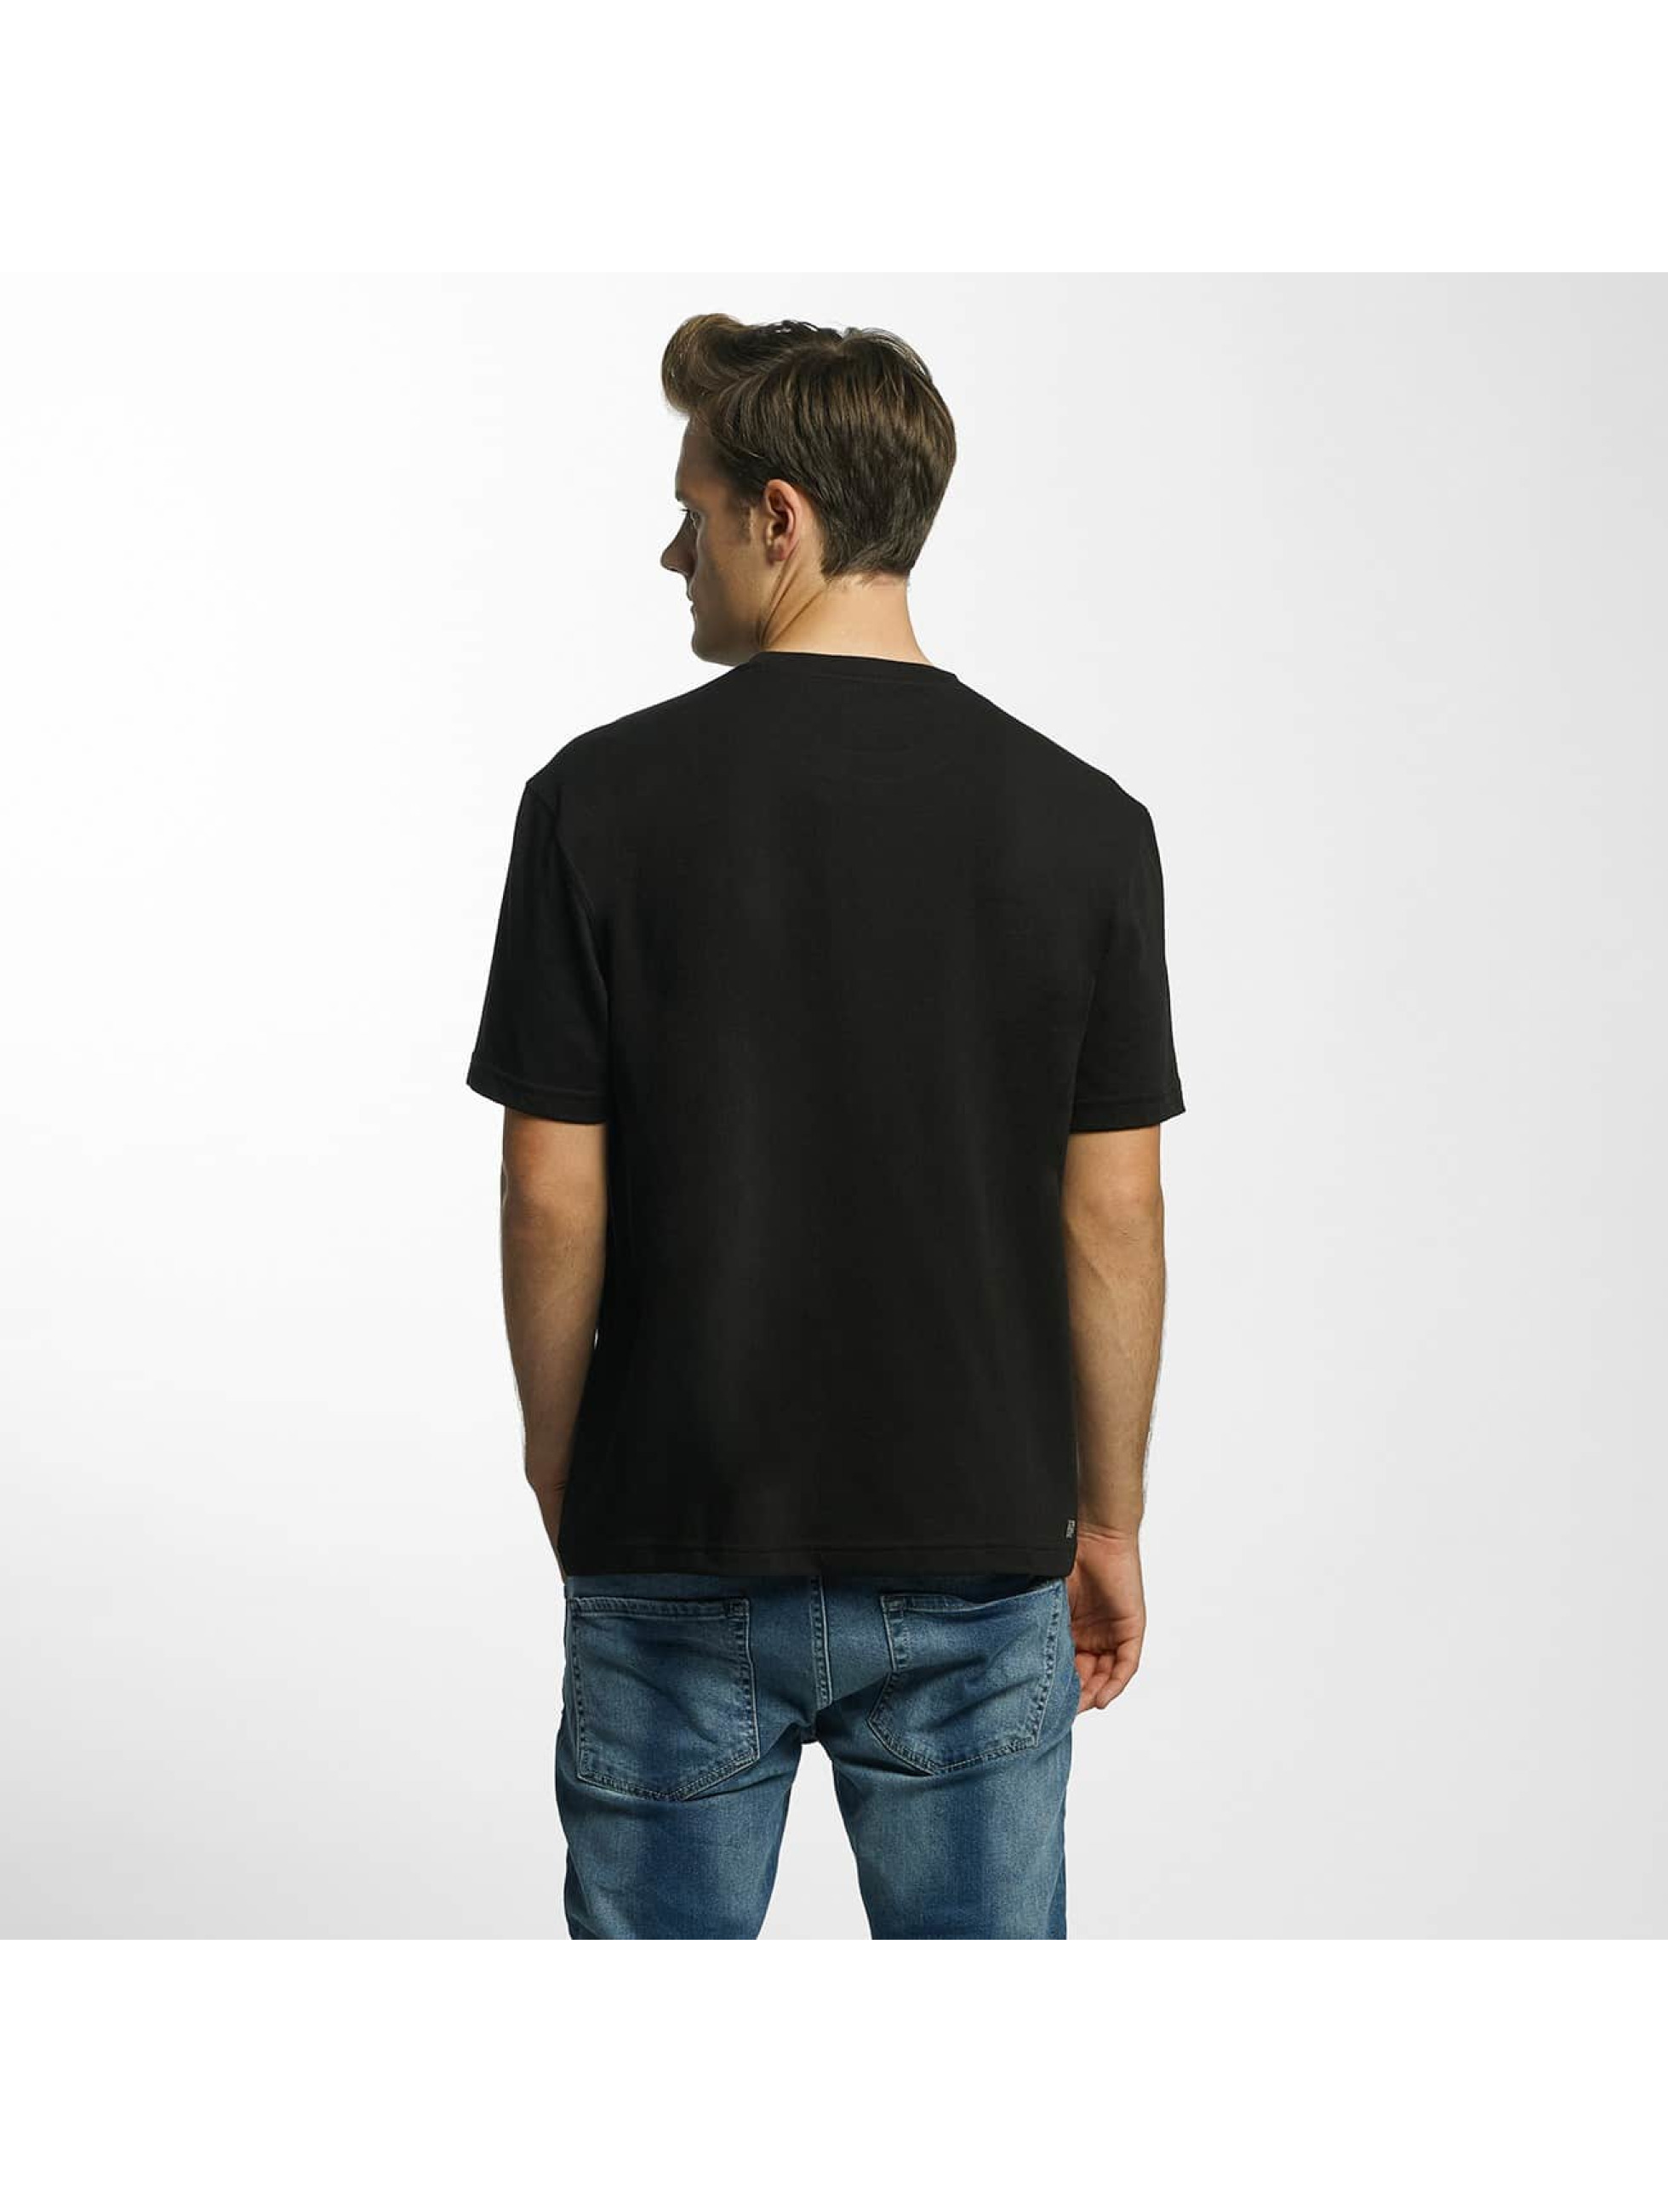 lacoste herren t shirt sport in schwarz 352865. Black Bedroom Furniture Sets. Home Design Ideas